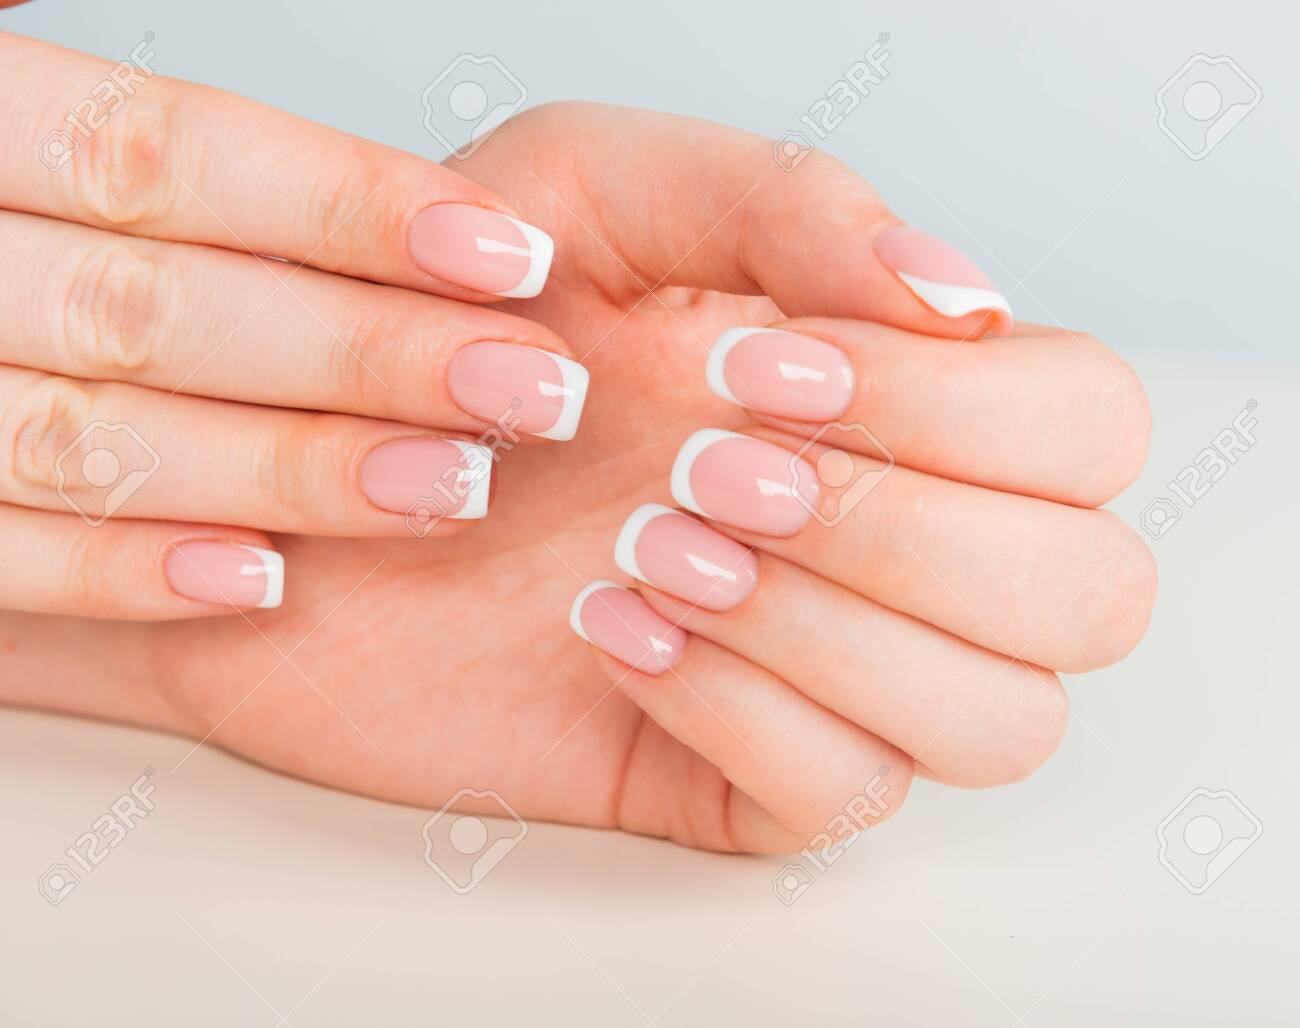 Beautiful woman's hands with beautiful nails after manicure salon with french manicure - 121699667